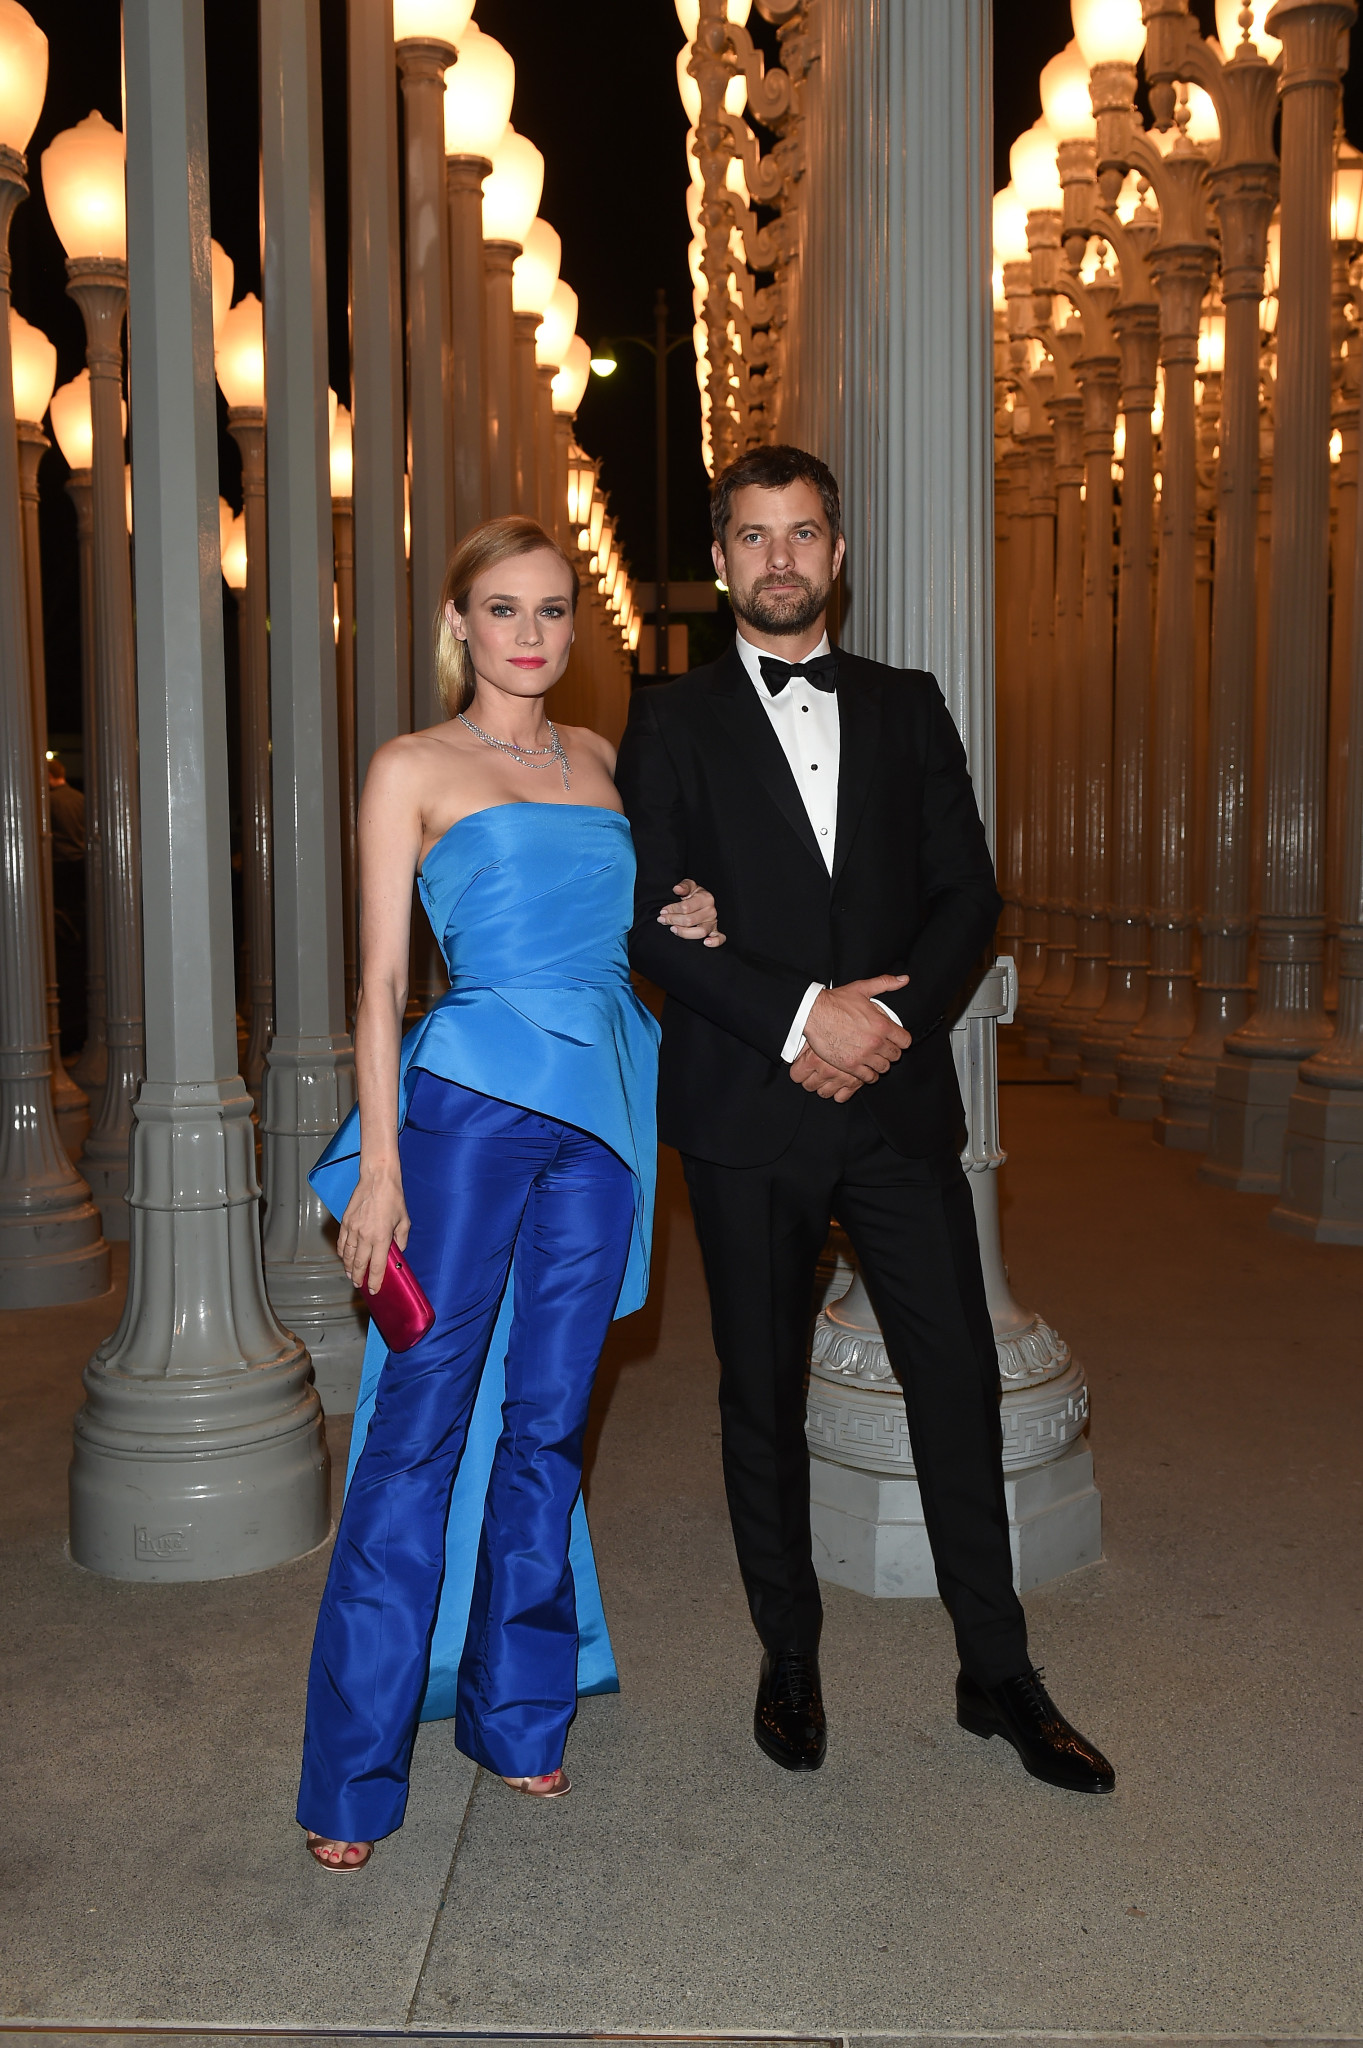 LOS ANGELES, CA - NOVEMBER 07: Actors Diane Kruger (L) and Joshua Jackson attend LACMA 2015 Art+Film Gala Honoring James Turrell and Alejandro G Iñárritu, Presented by Gucci at LACMA on November 7, 2015 in Los Angeles, California.  (Photo by Venturelli/Getty Images For LACMA) *** Local Caption *** Diane Kruger;Joshua Jackson